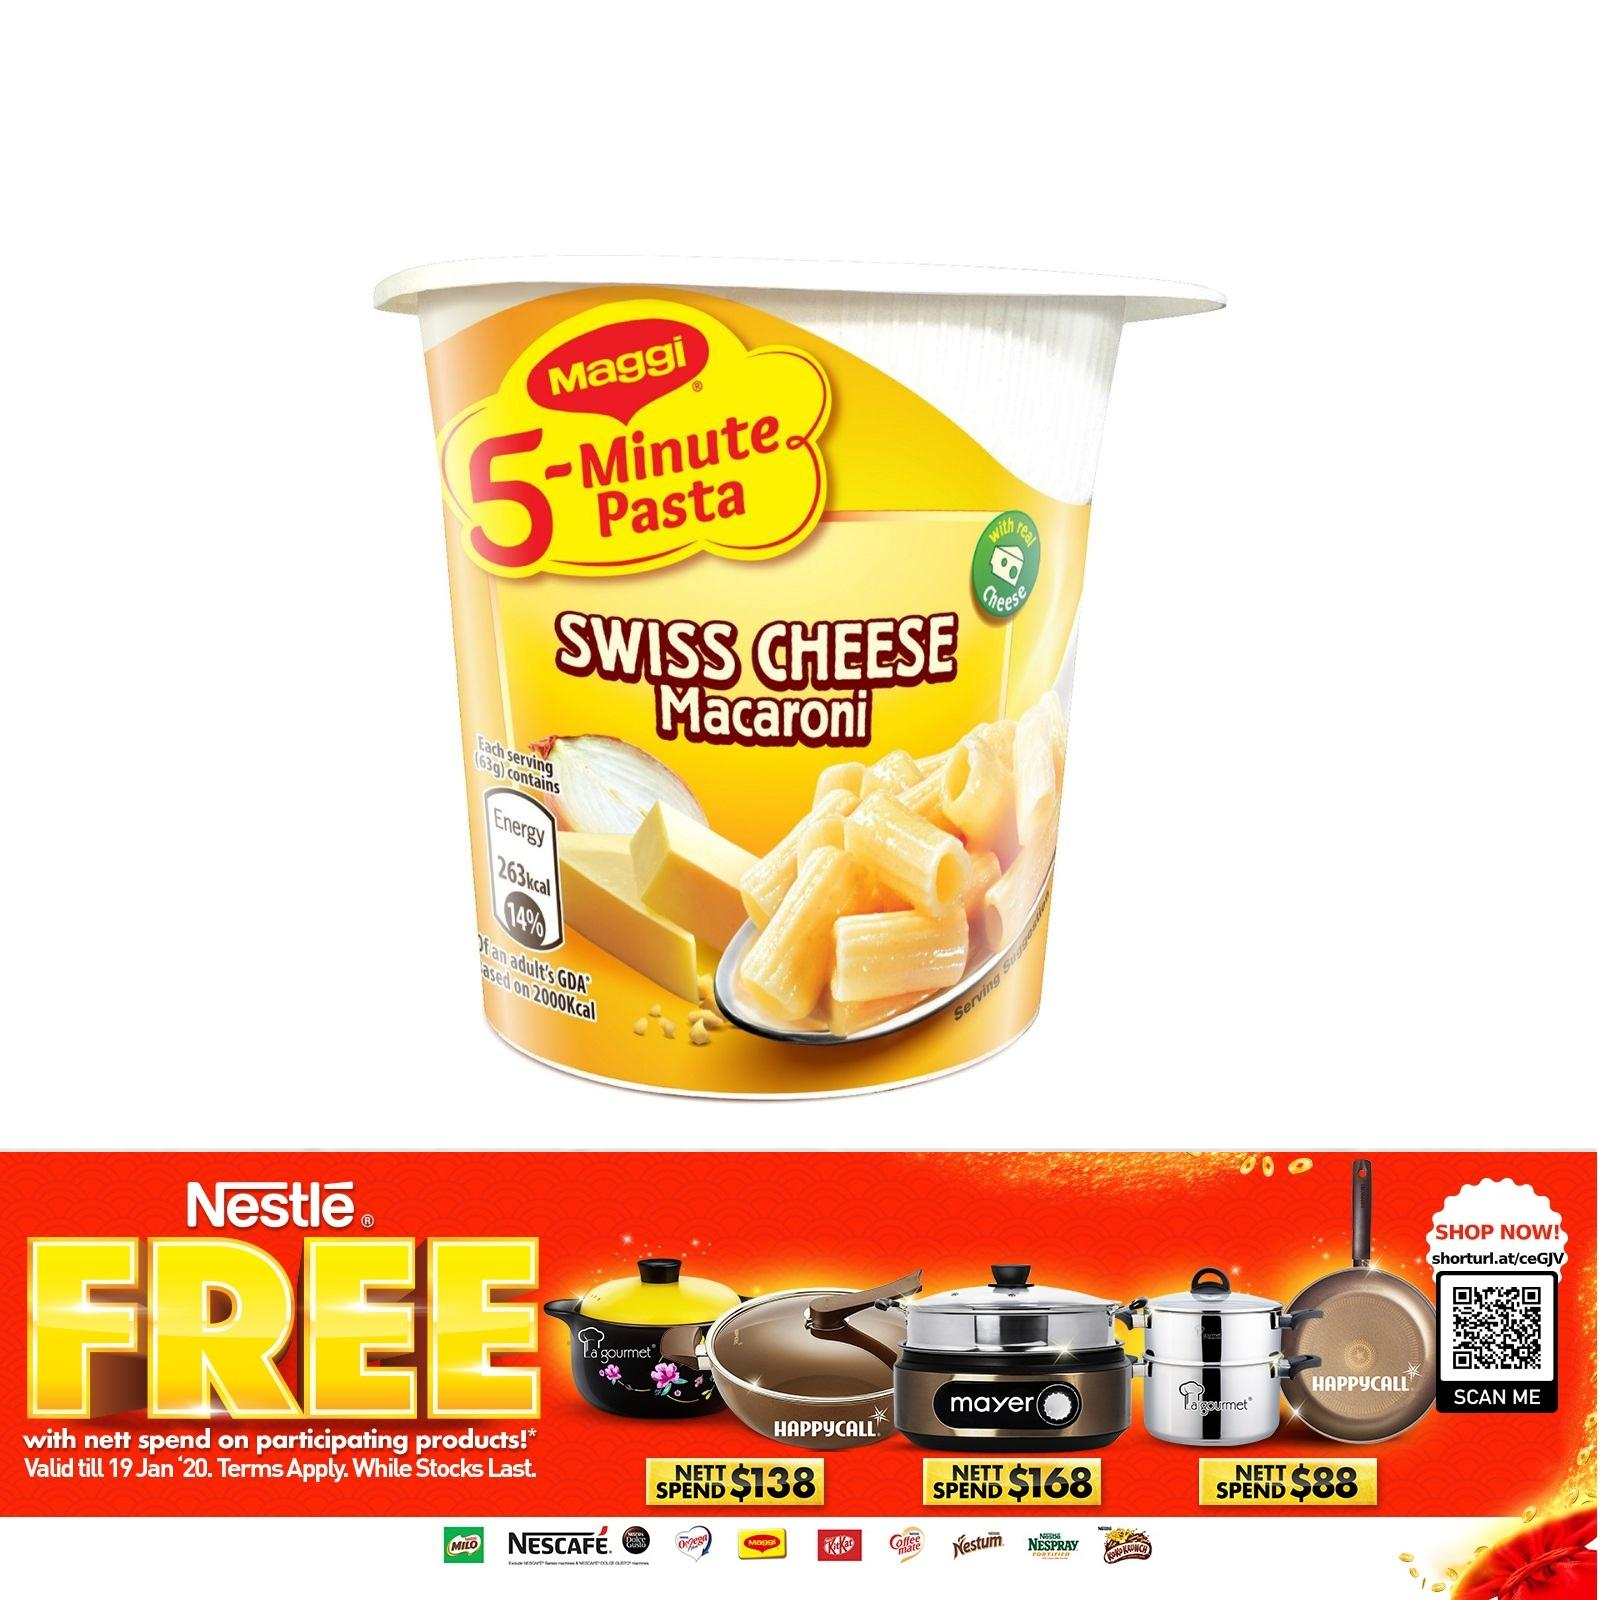 Maggi 5-Minute Instant Cup Pasta - Swiss Cheese Macaroni